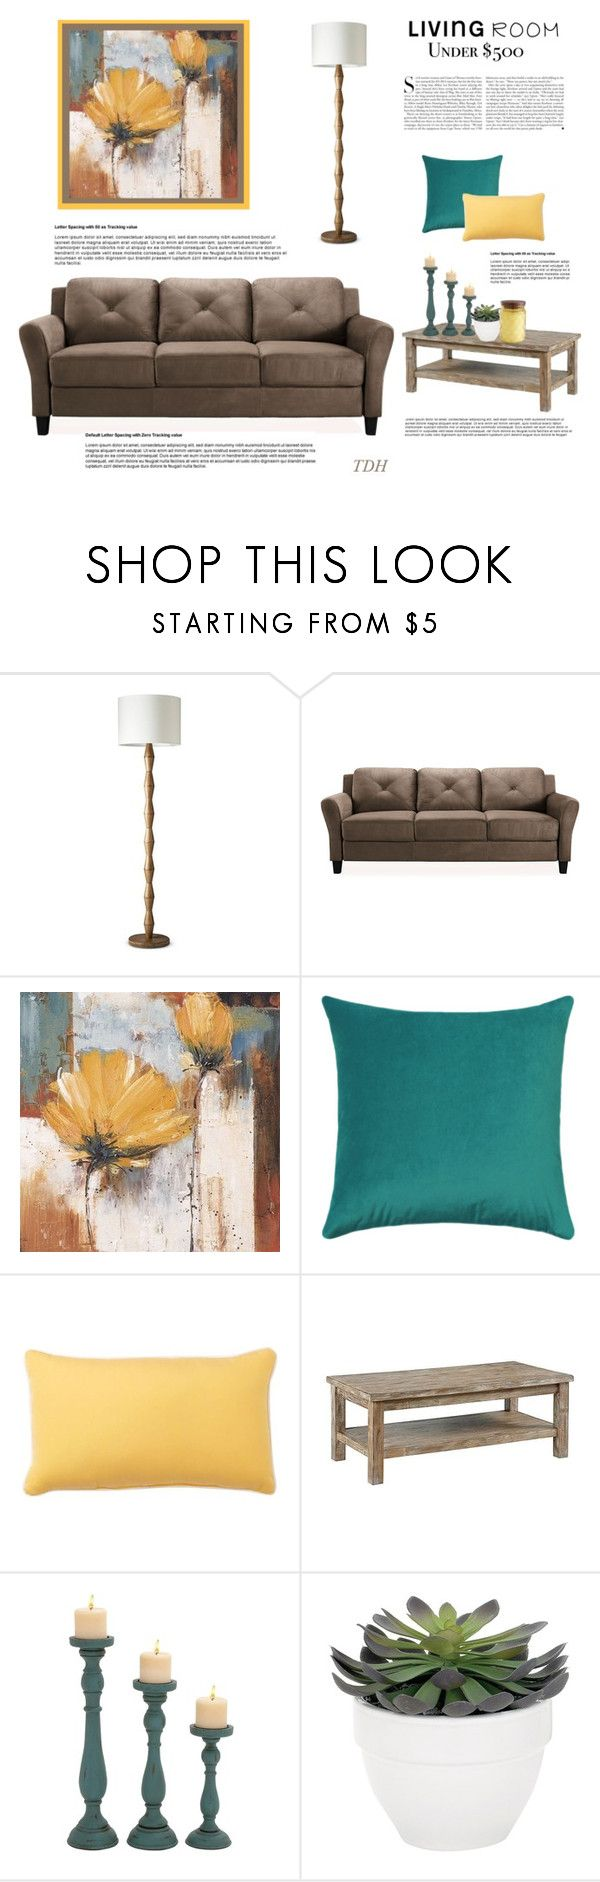 """Living Room Under $500"" by talvadh ❤ liked on Polyvore featuring interior, interiors, interior design, home, home decor, interior decorating, Yosemite Home Décor, Pottery Barn, Kershaw and Torre & Tagus"